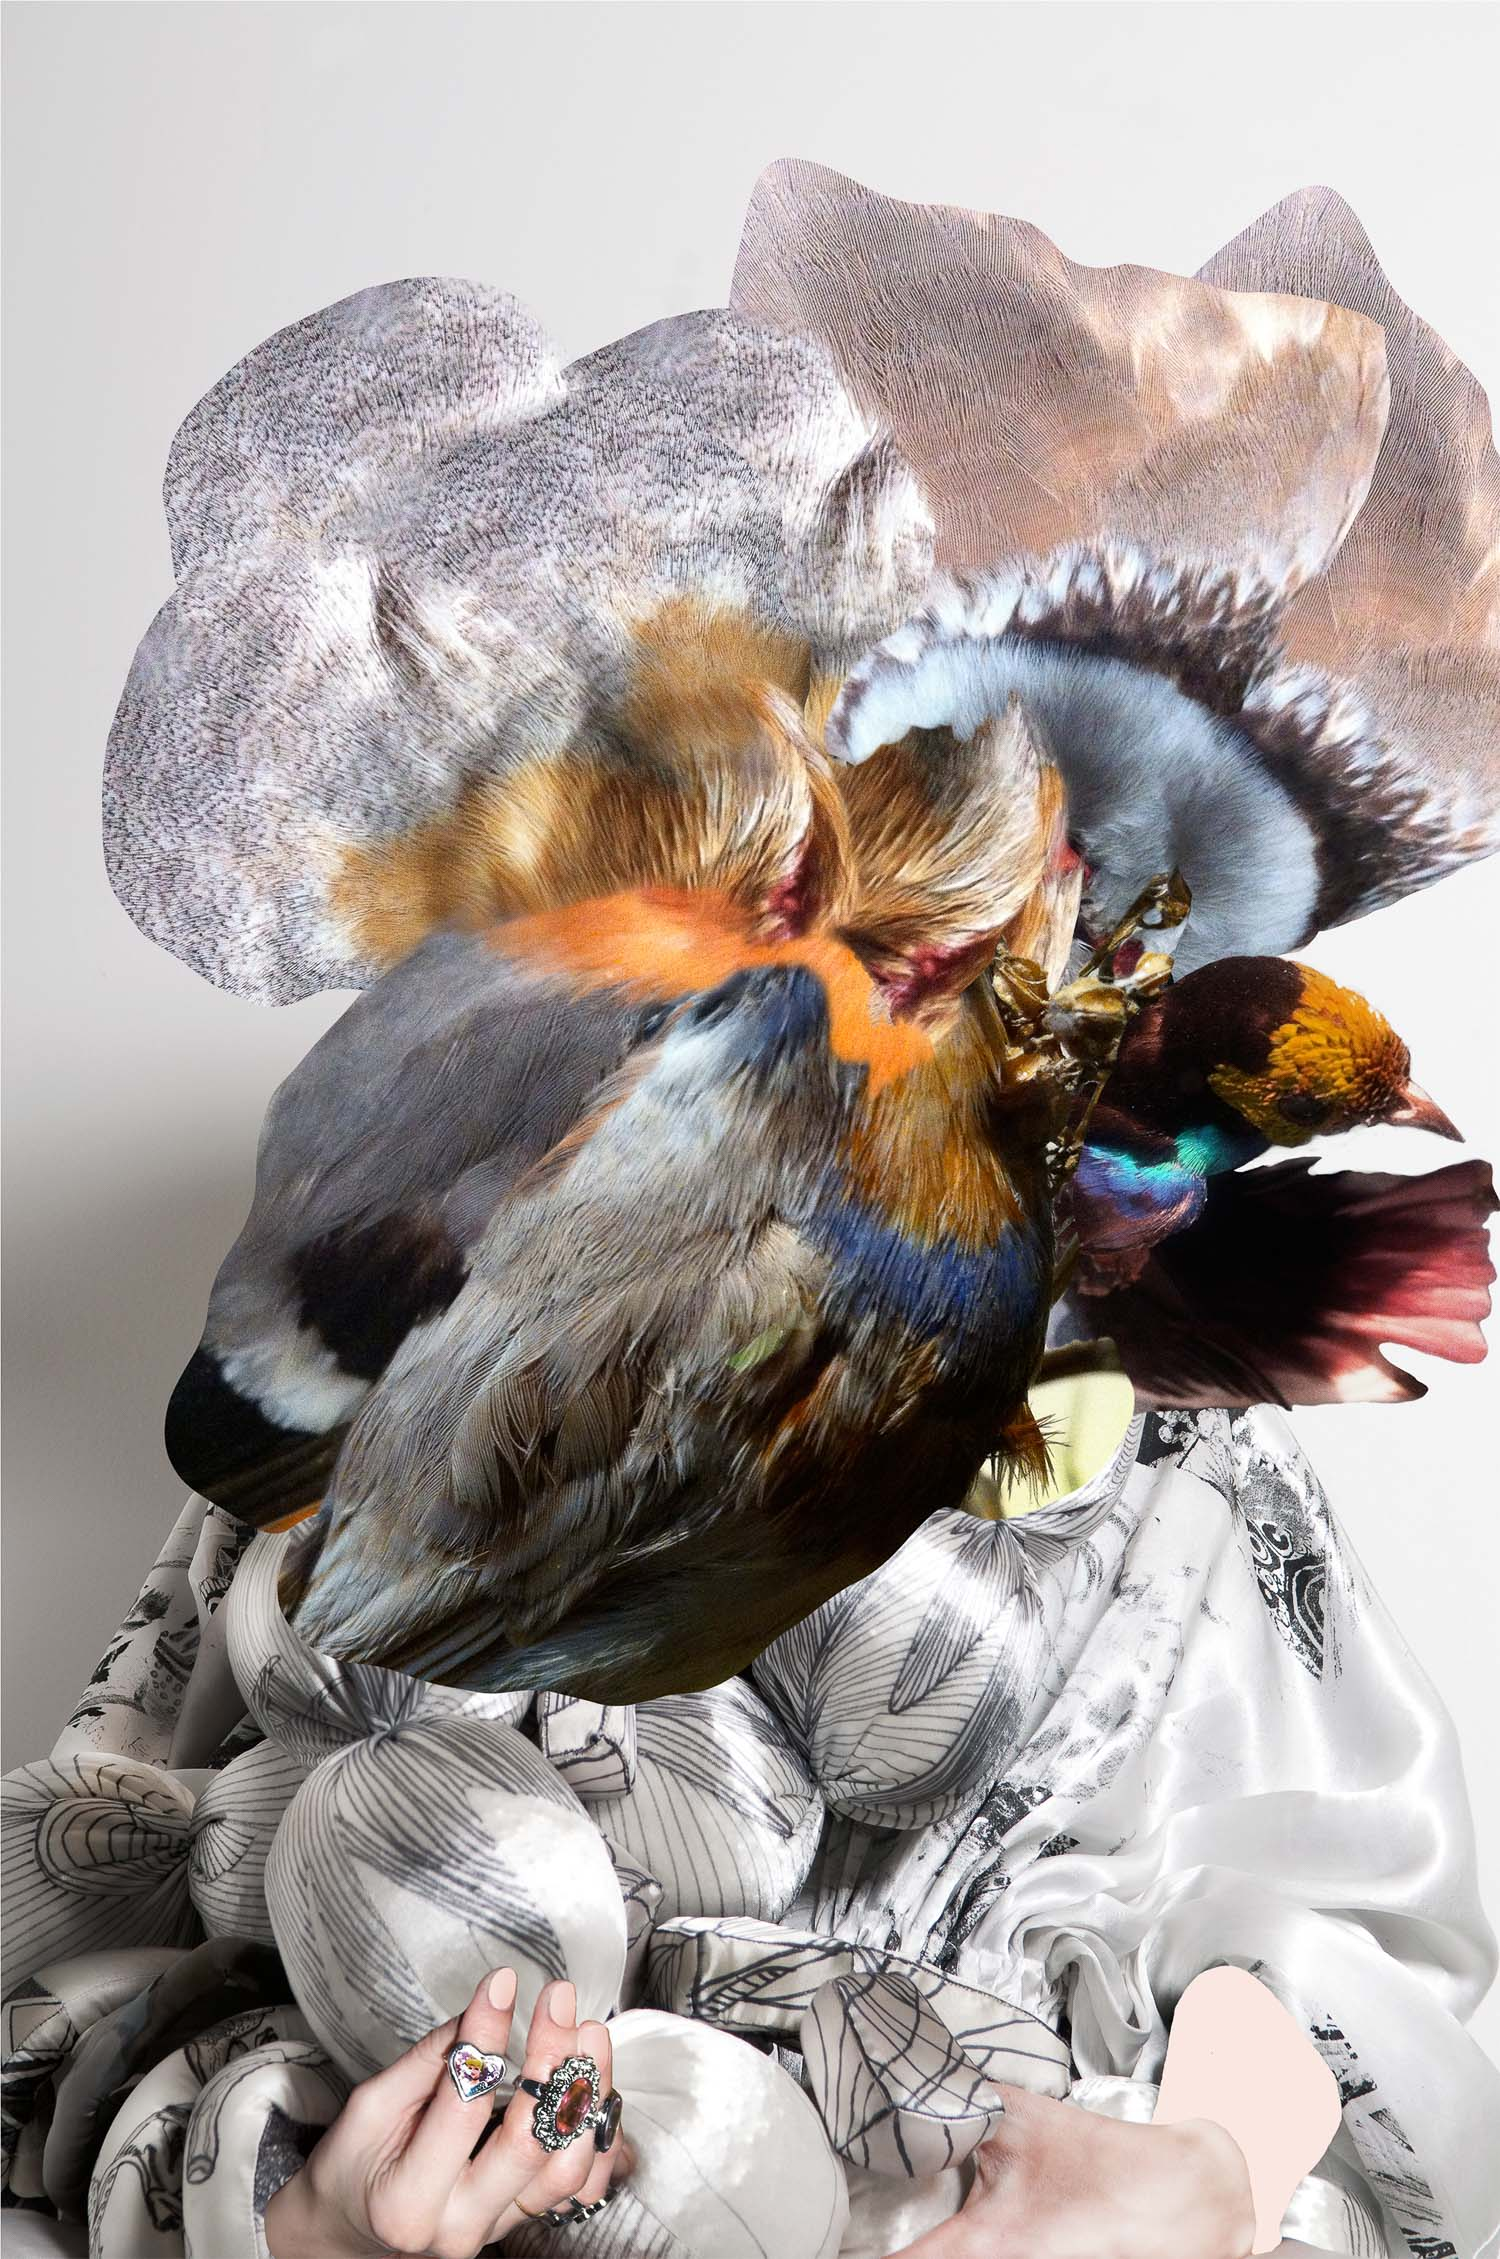 Feather Head, 2012